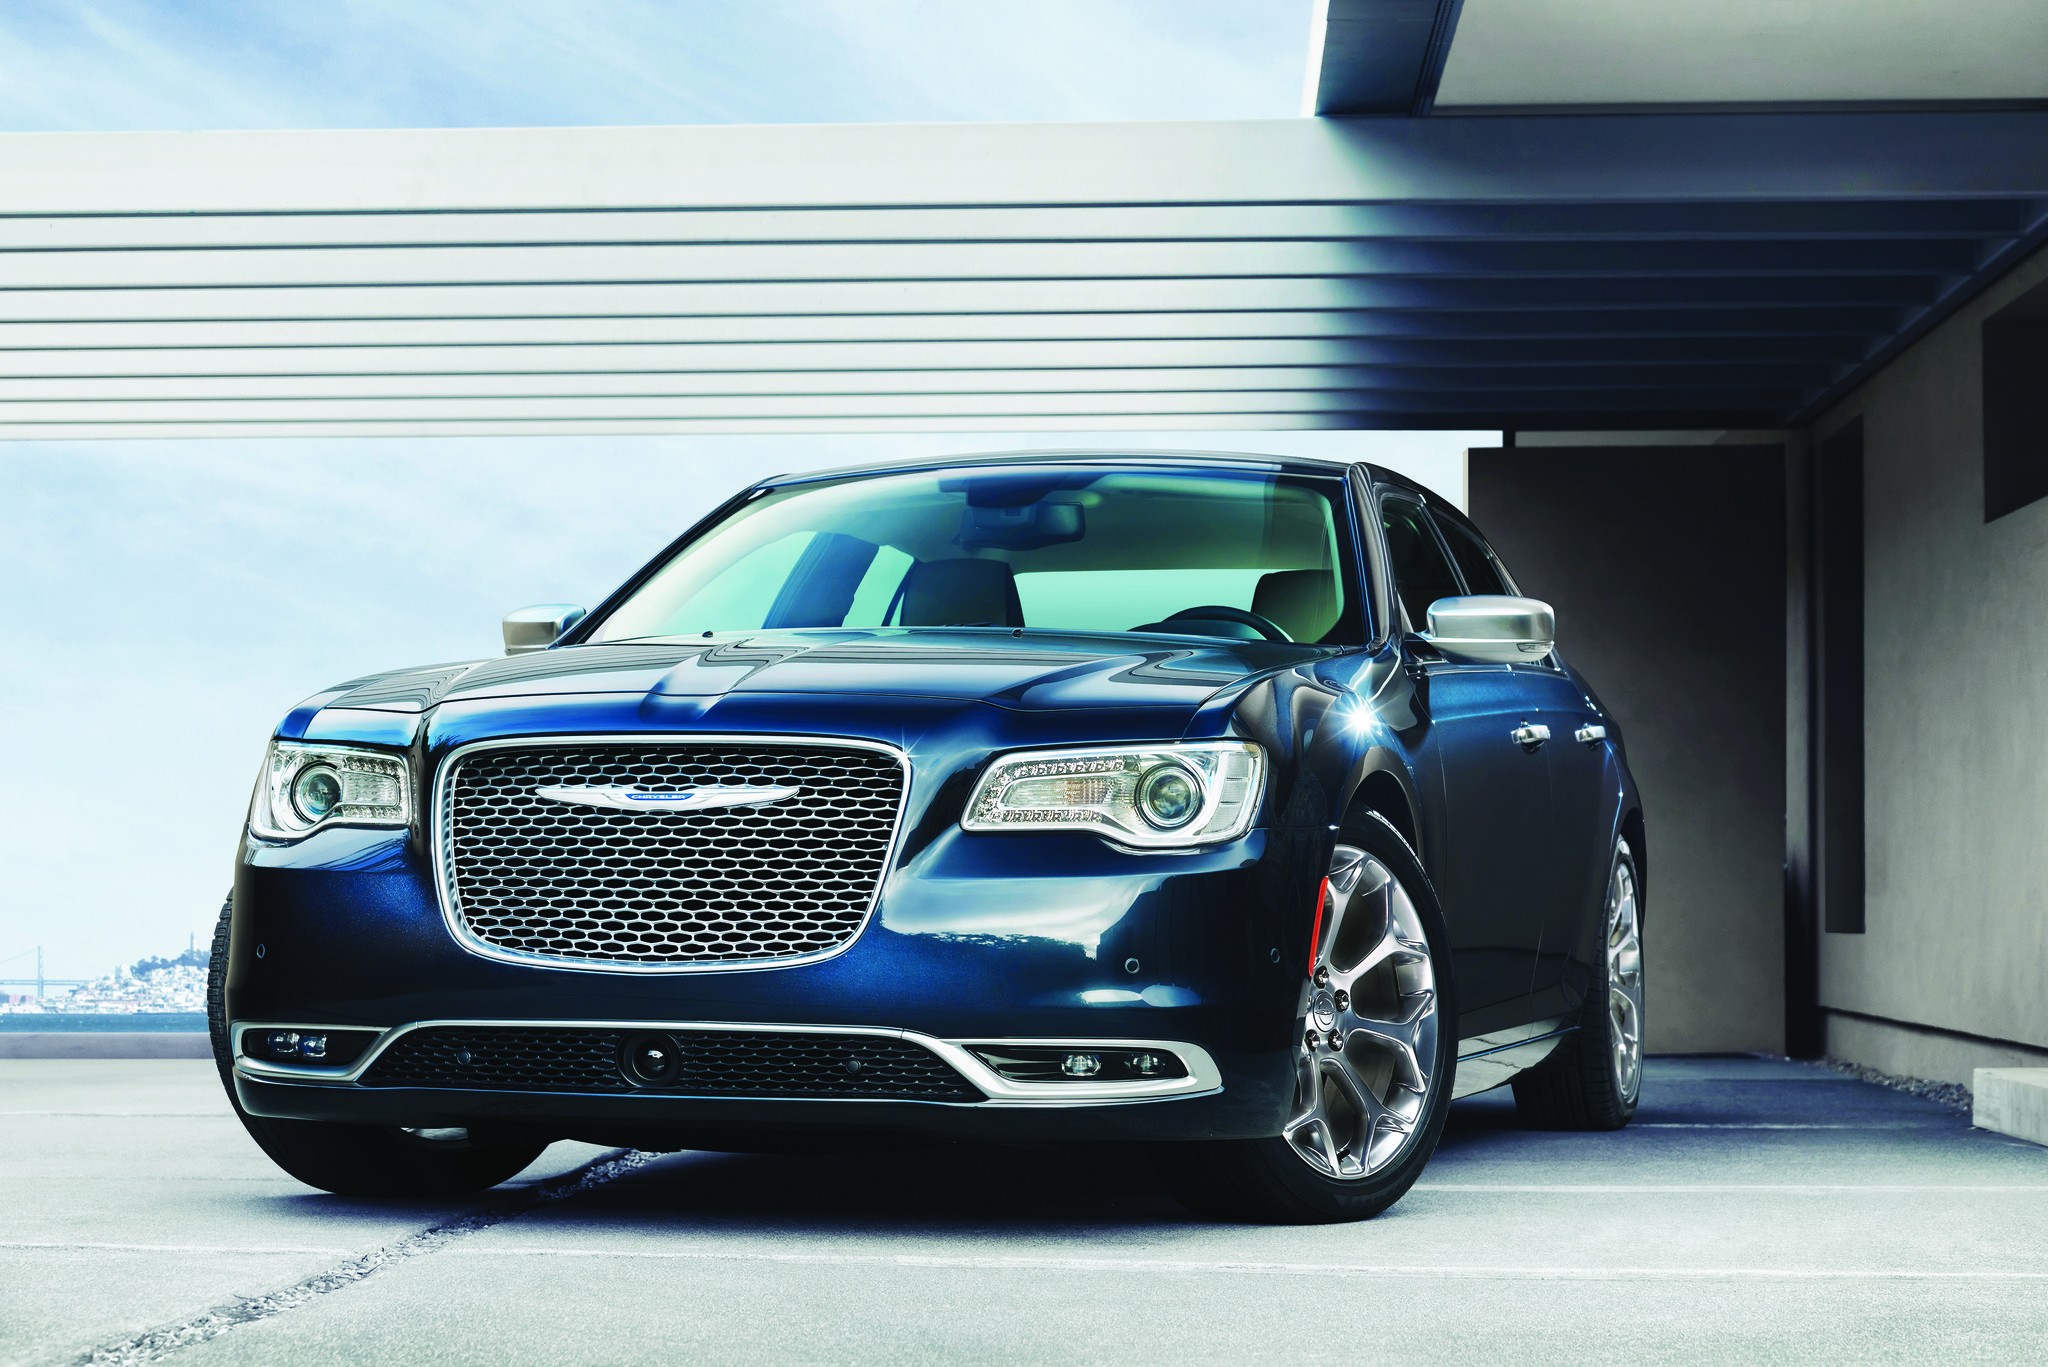 images cars of edition rear c chrysler and editions hd alloy wallpaper